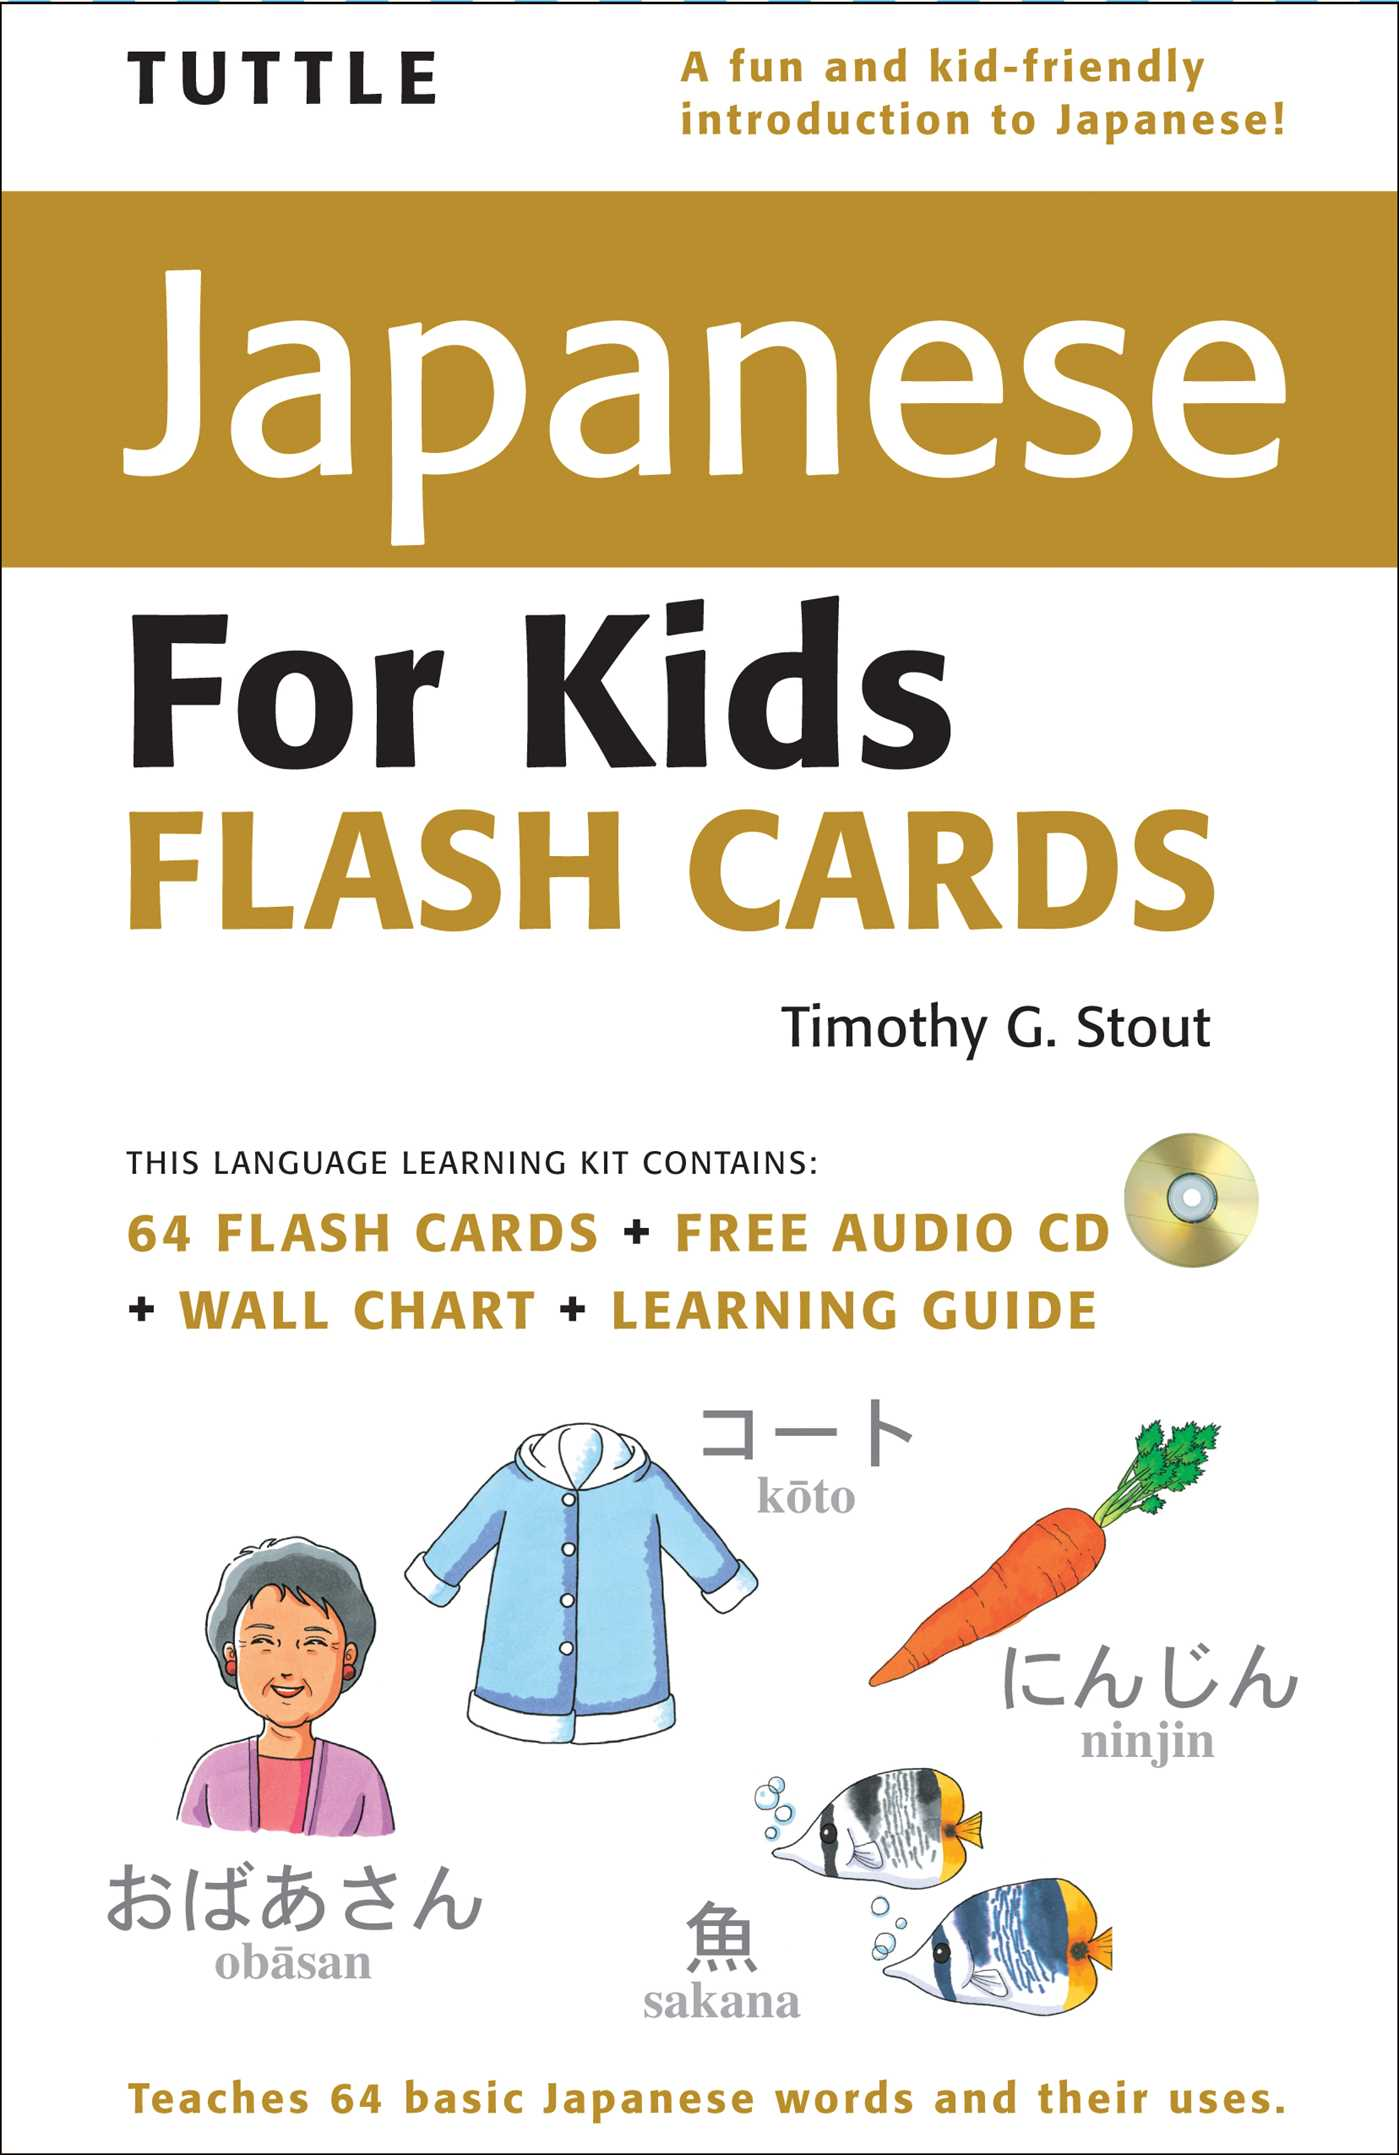 Tuttle-japanese-for-kids-flash-cards-kit-9784805309049_hr